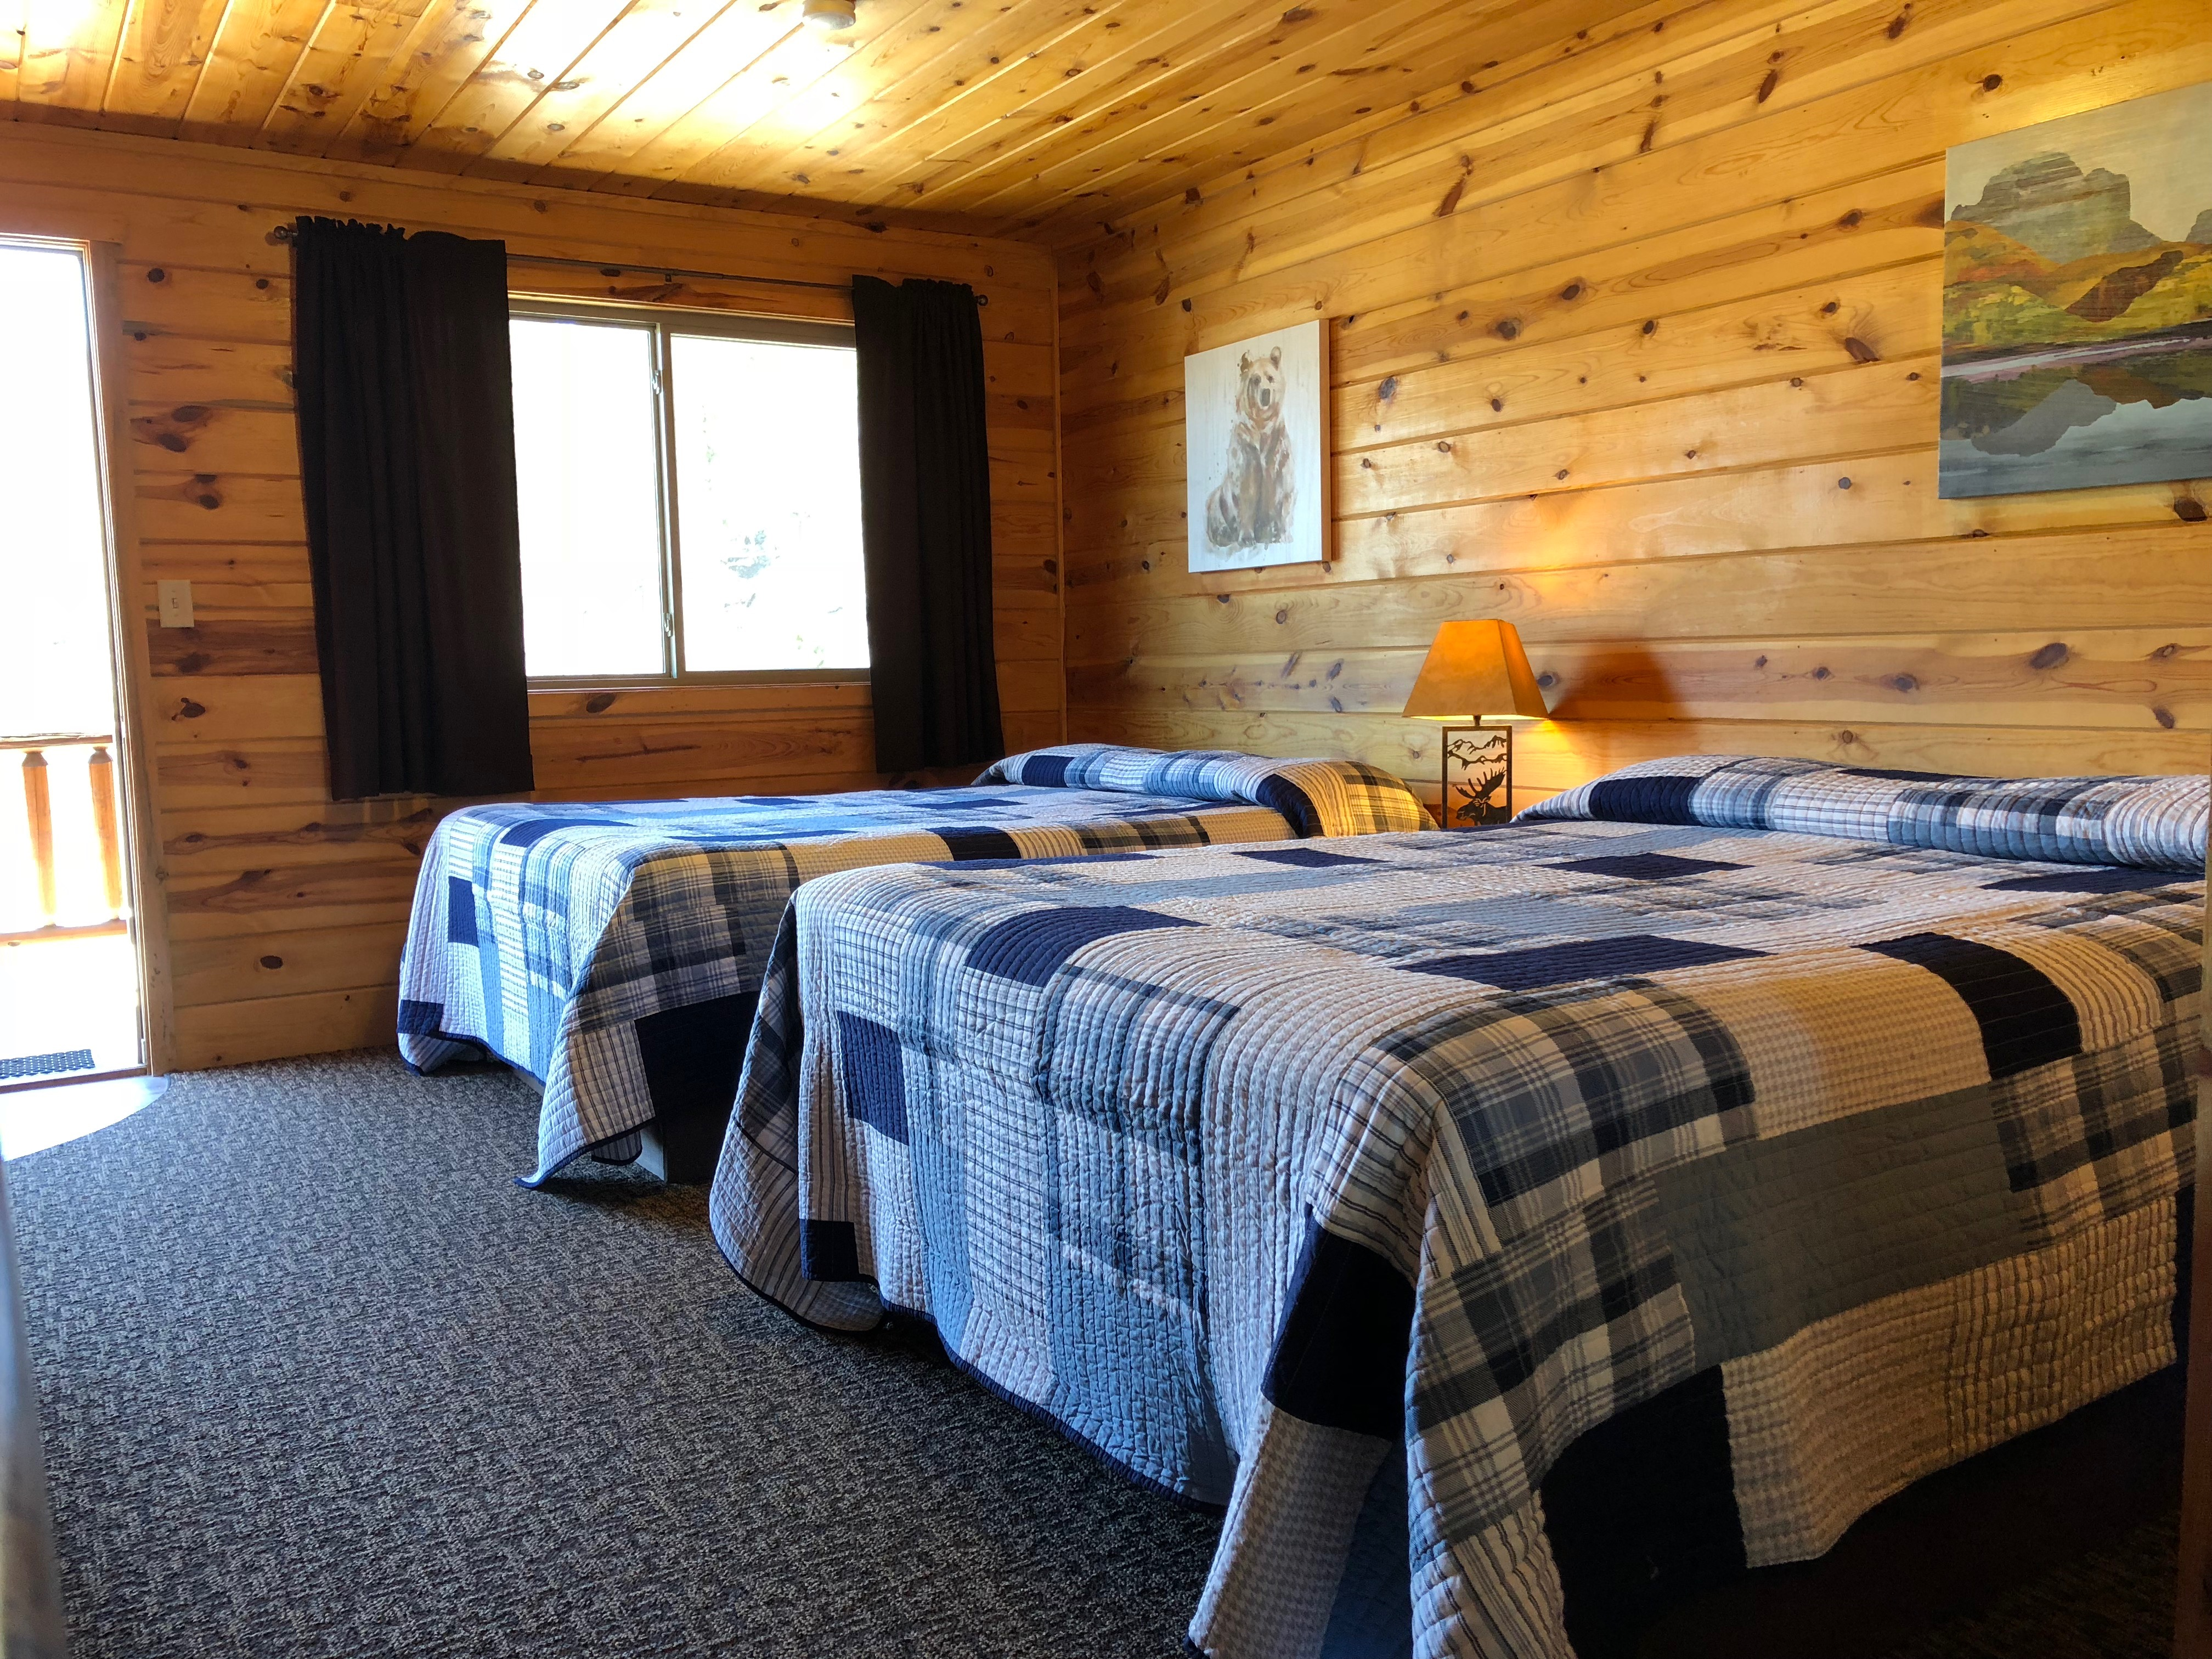 interior of double bed lodge